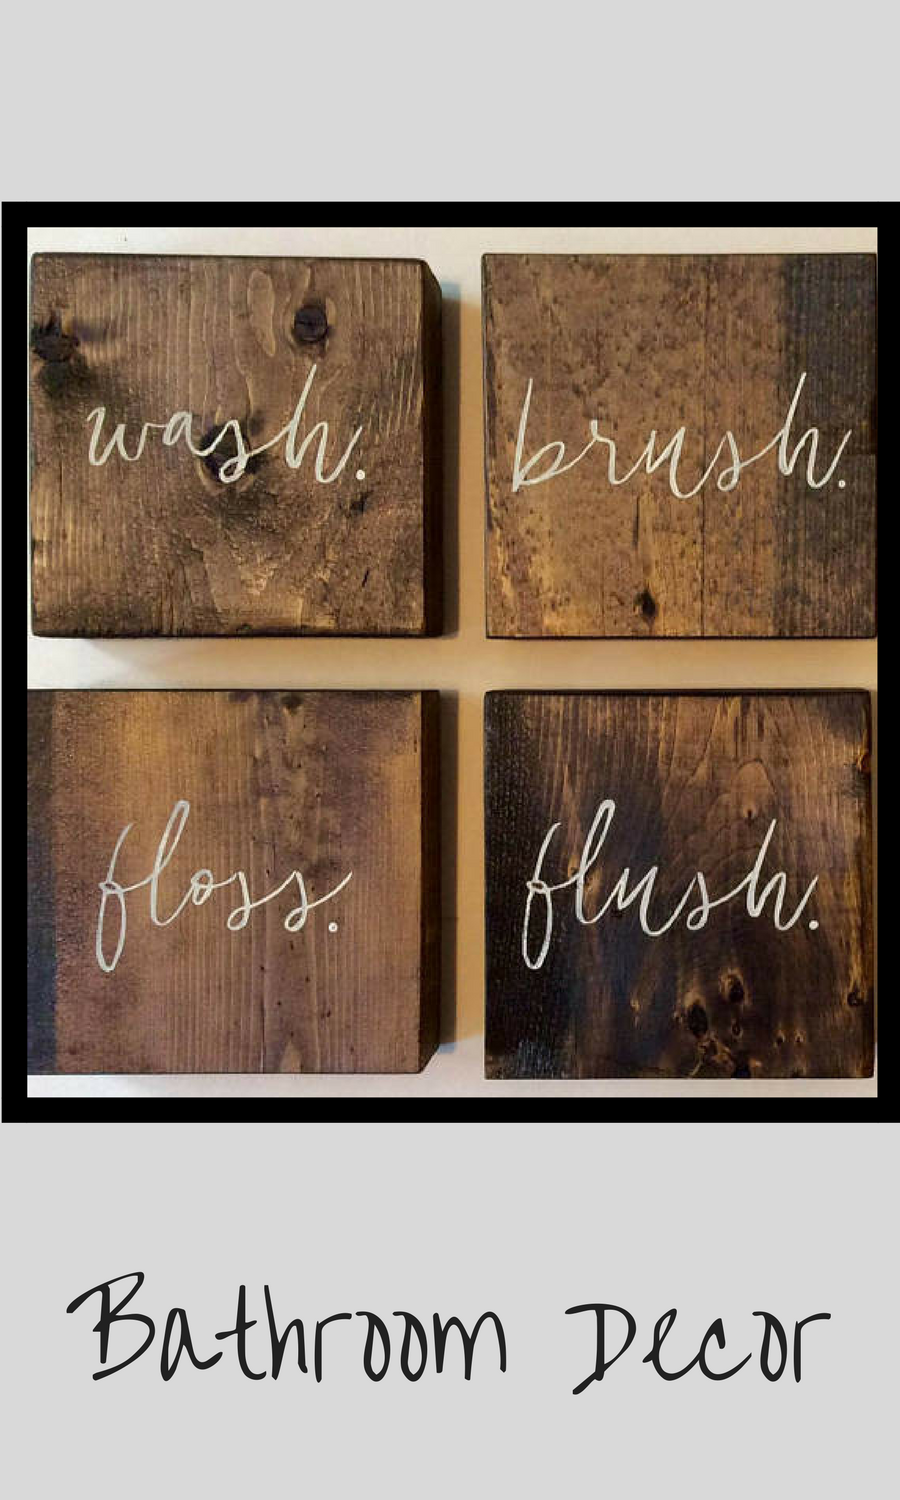 Bathroom wall bathroom wall decor bathroom decor rustic sign